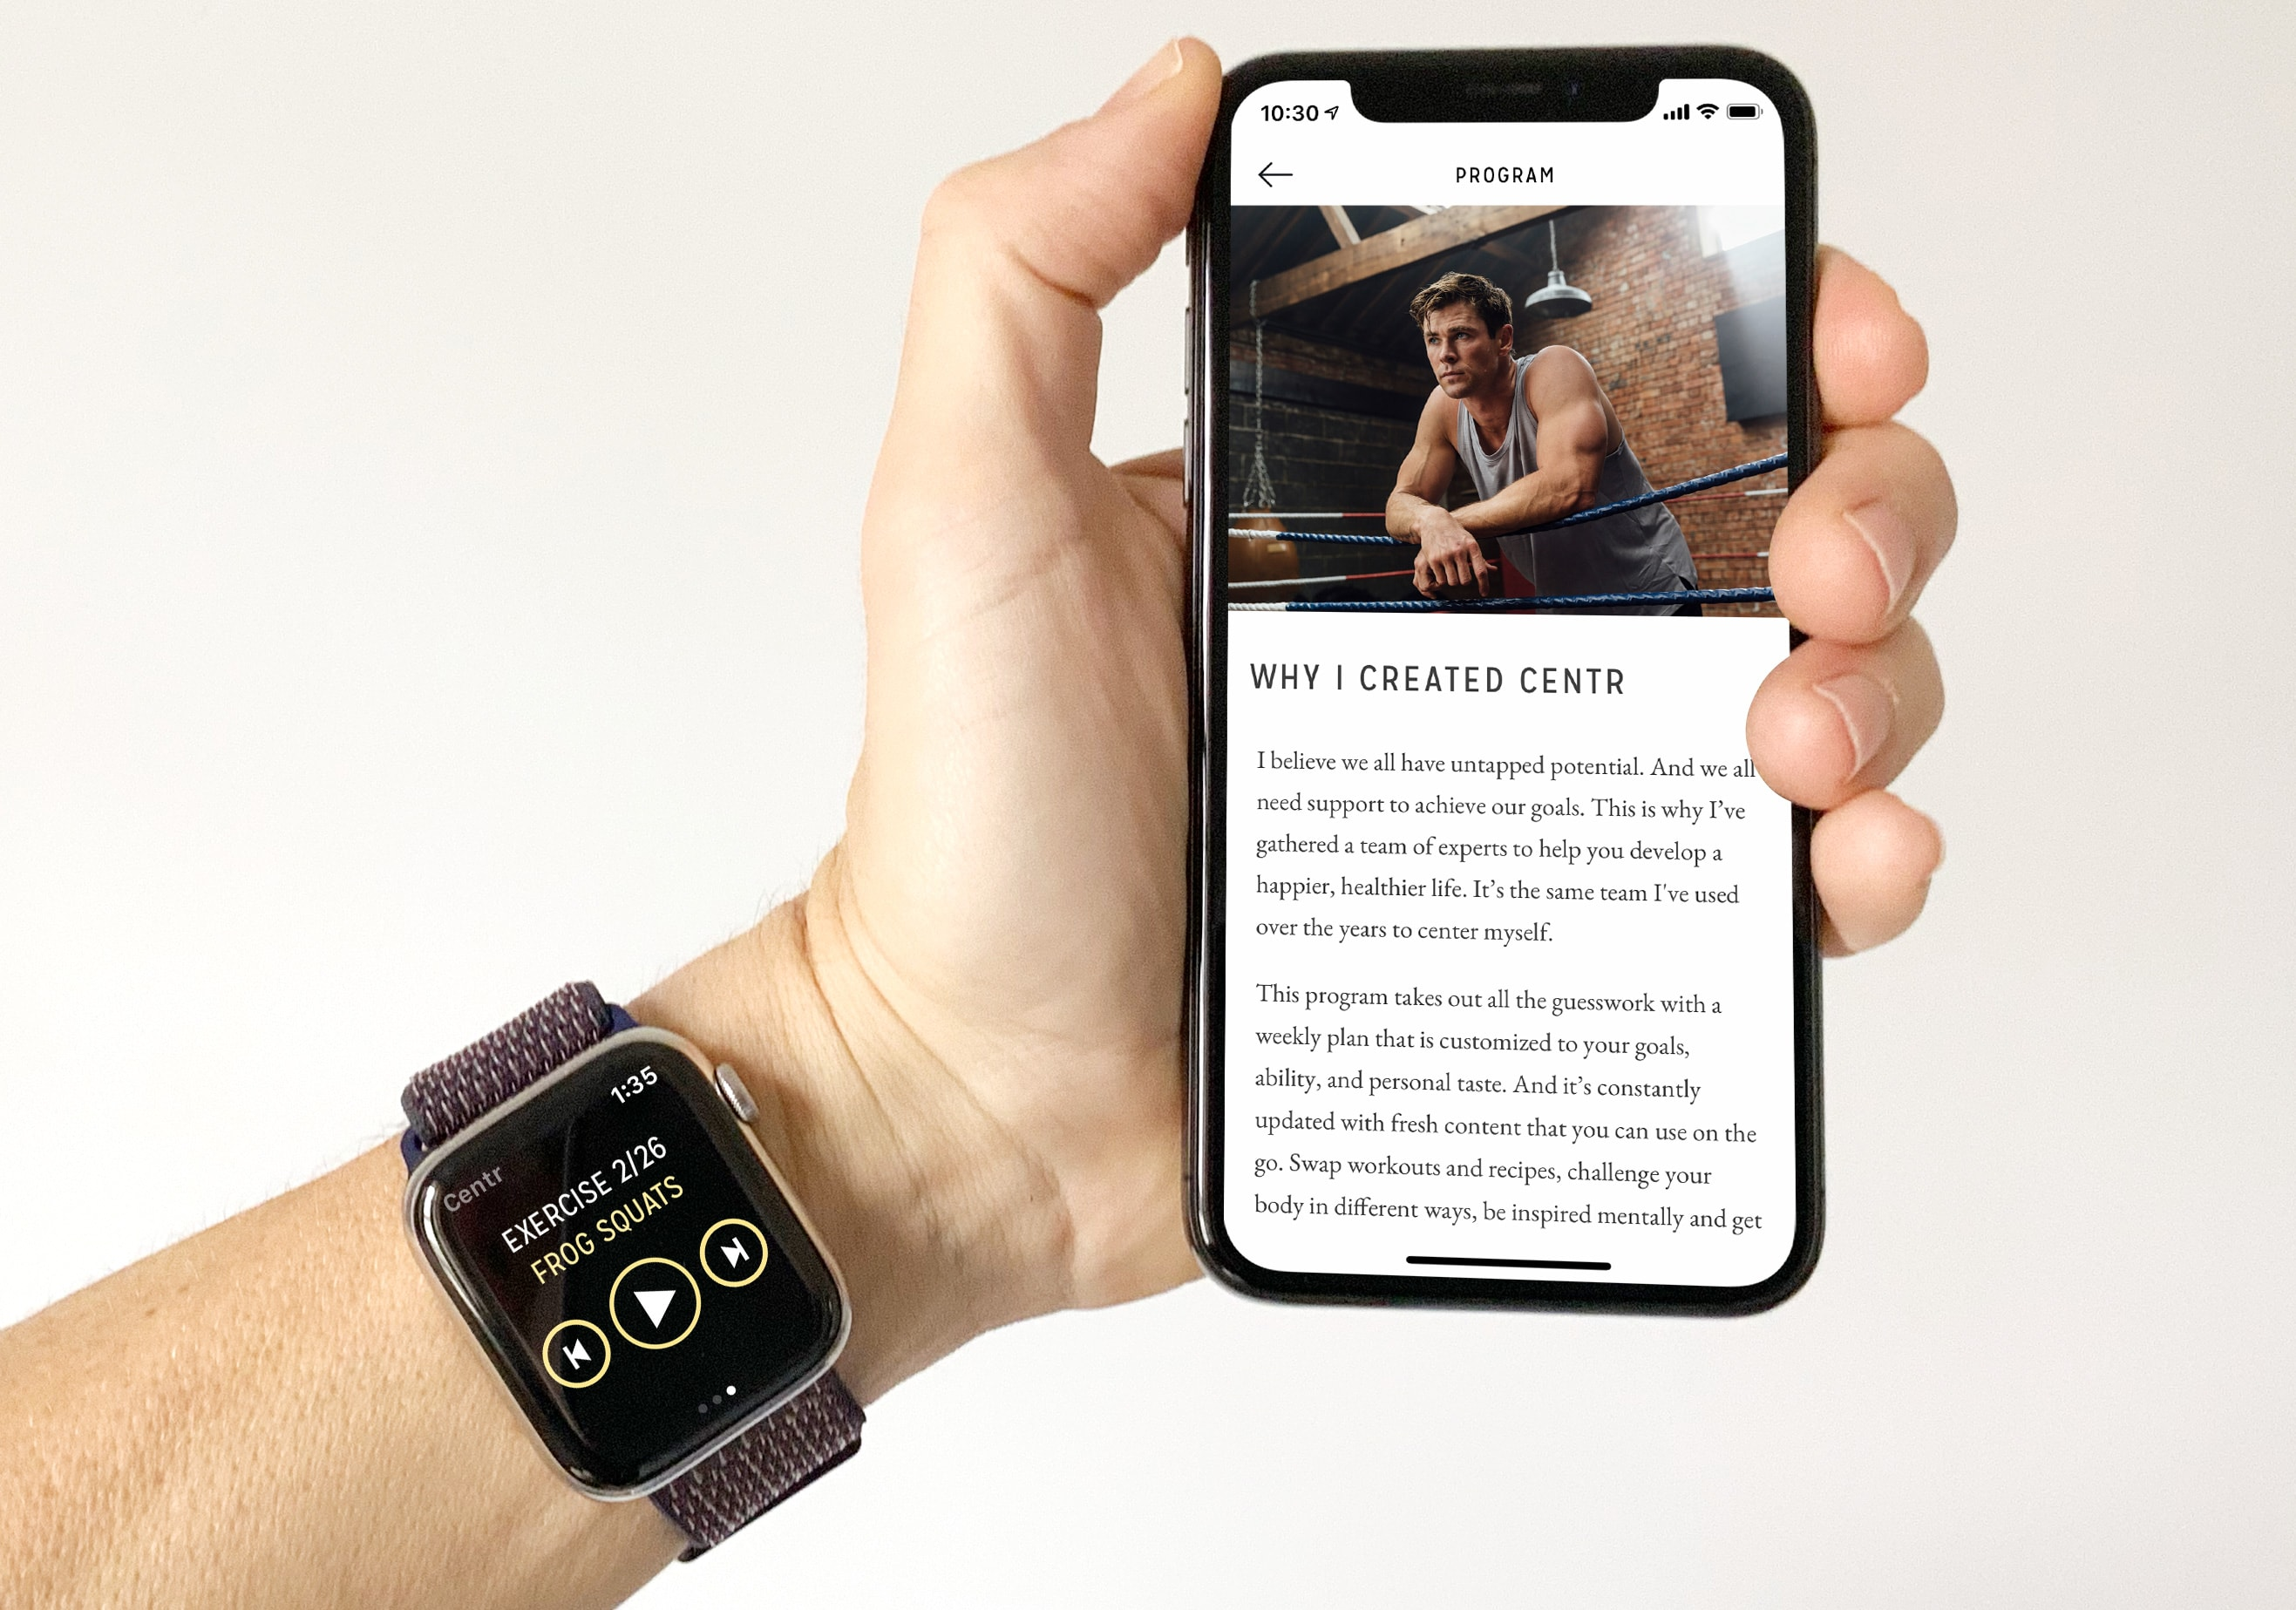 Centr is a new fitness app by Avengers star Chris Hemsworth